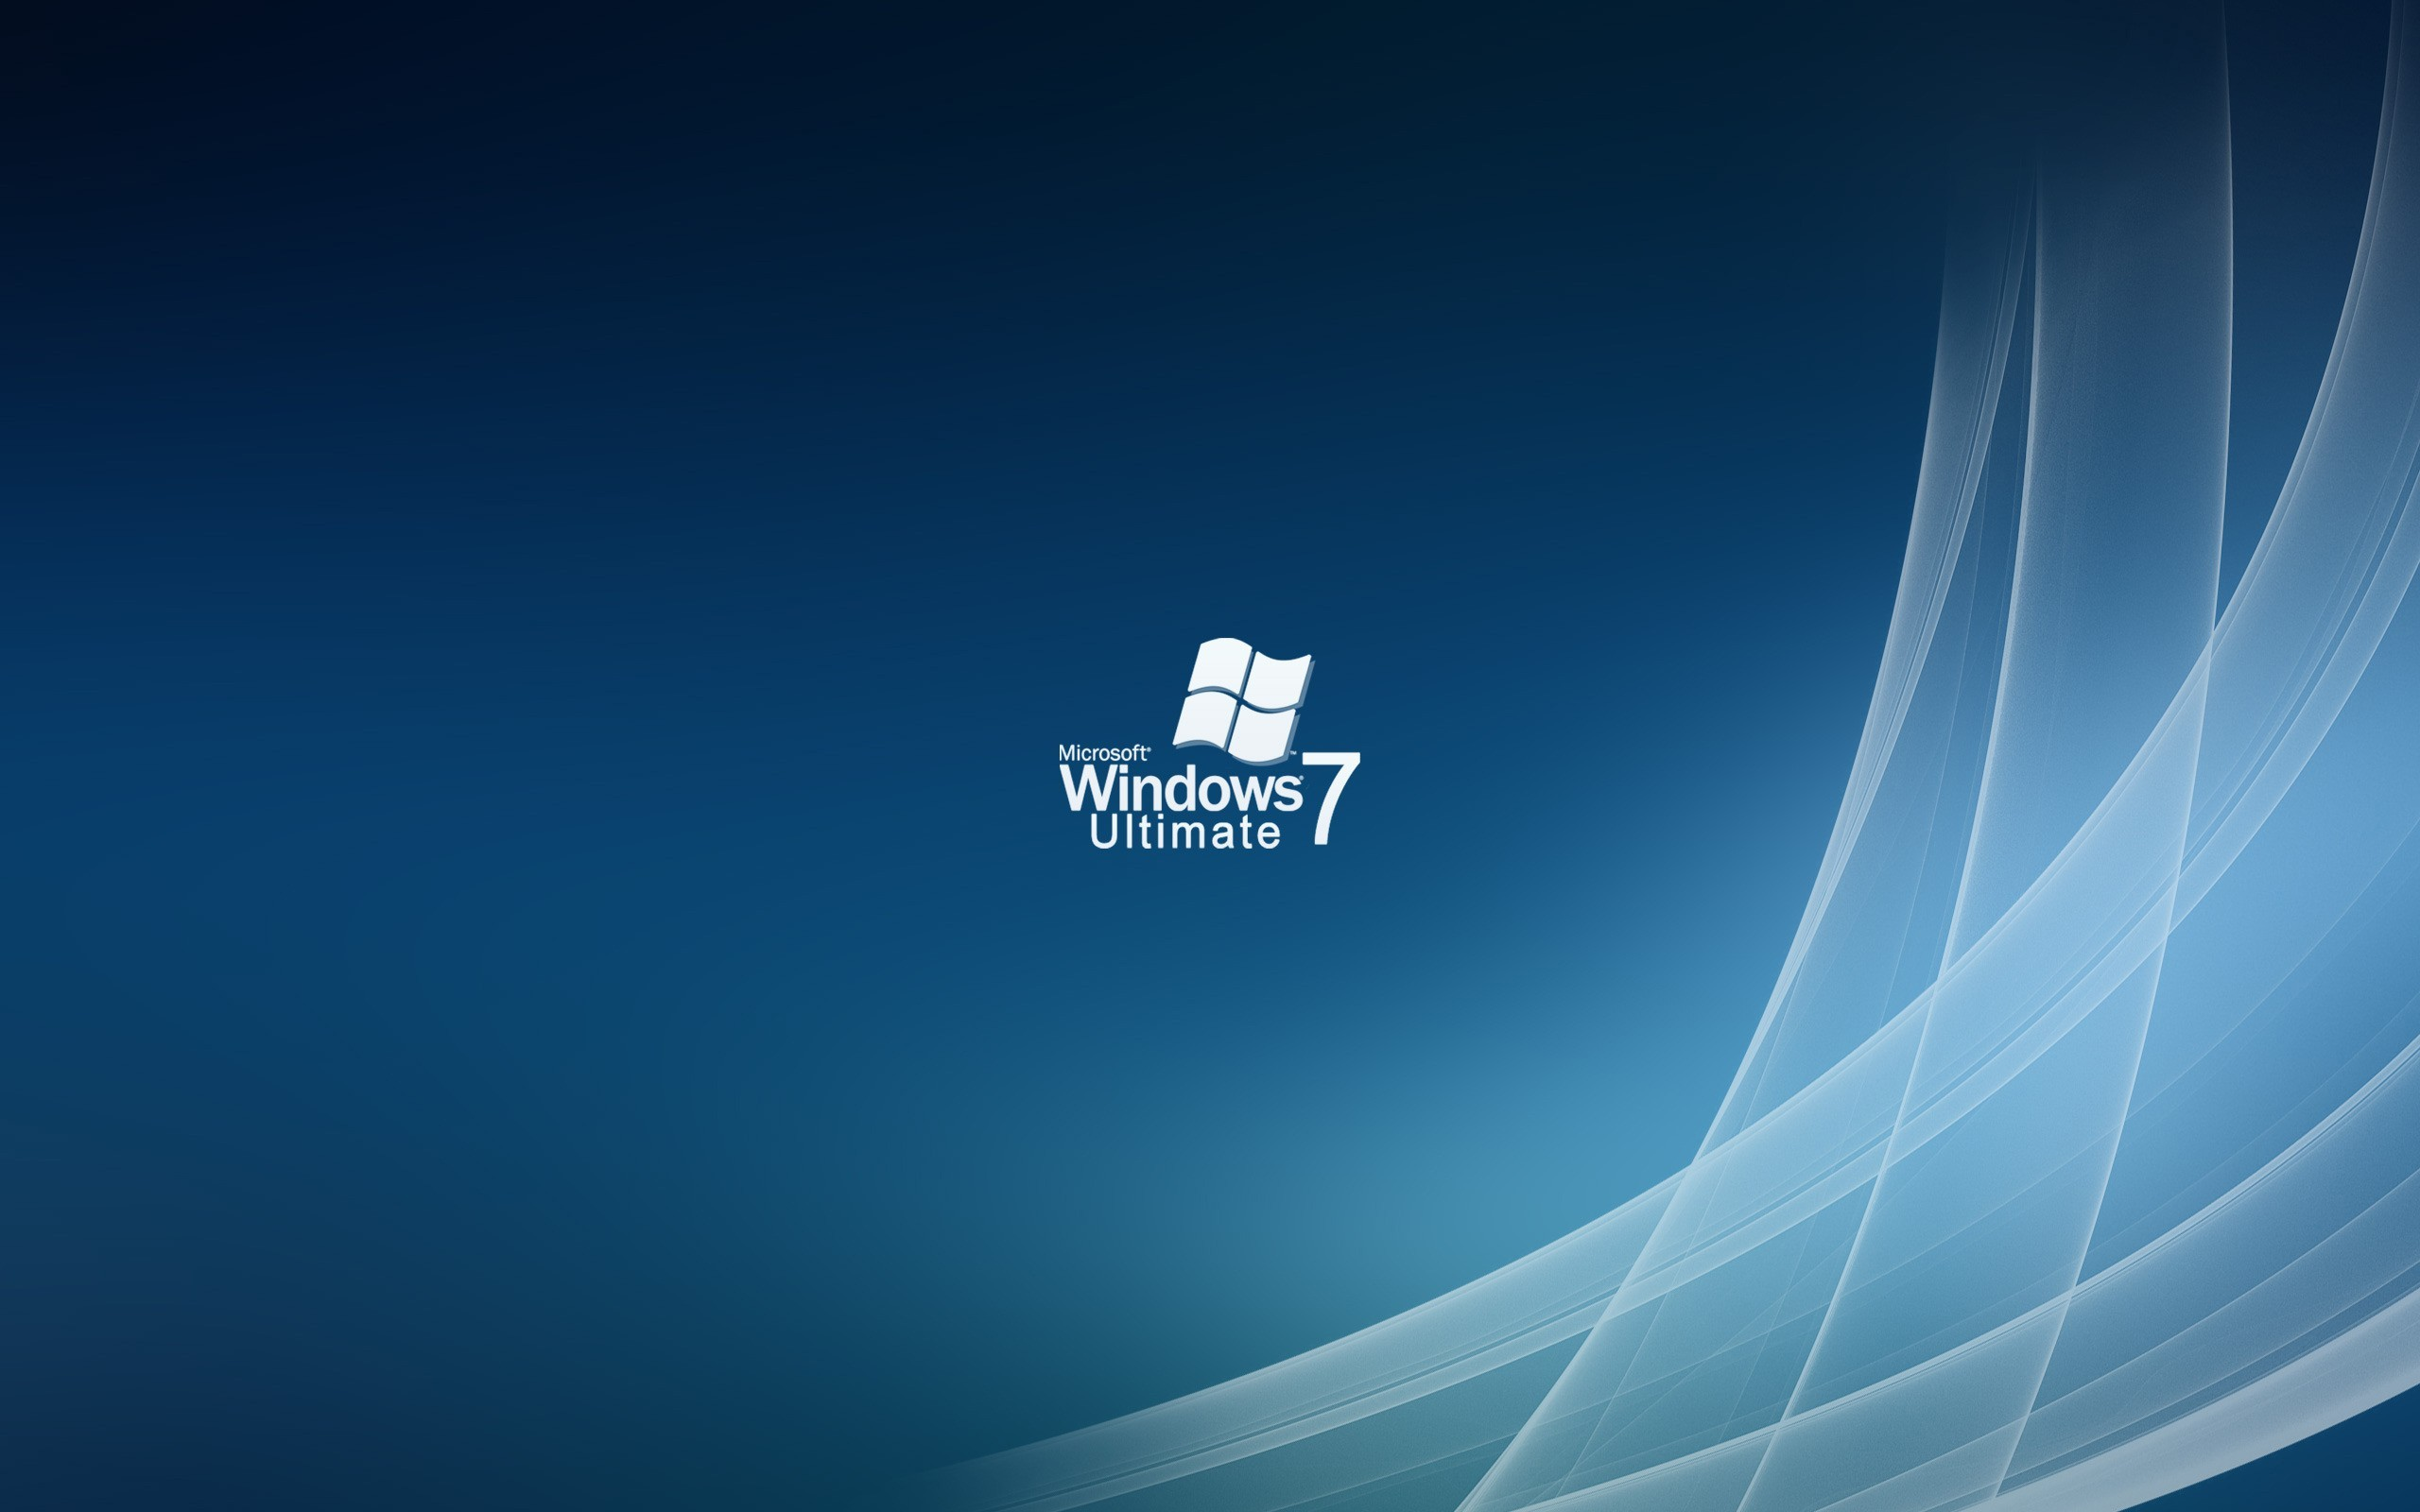 Windows 7 Desktop Backgrounds 71 Images